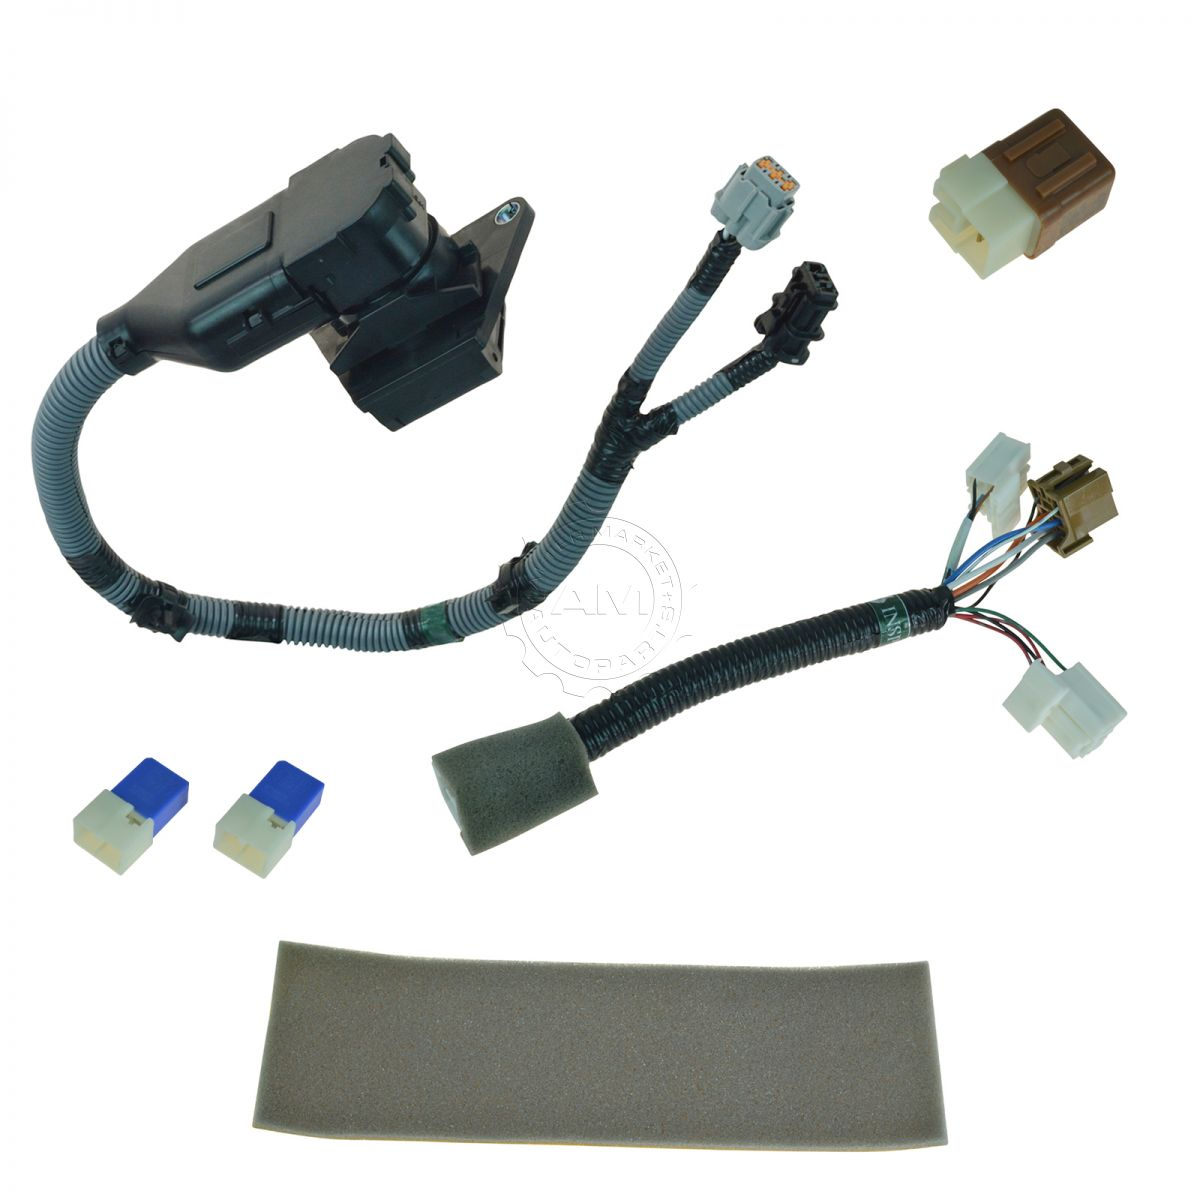 oem 999t8br020 complete 7 pin plug play tow harness kit. Black Bedroom Furniture Sets. Home Design Ideas